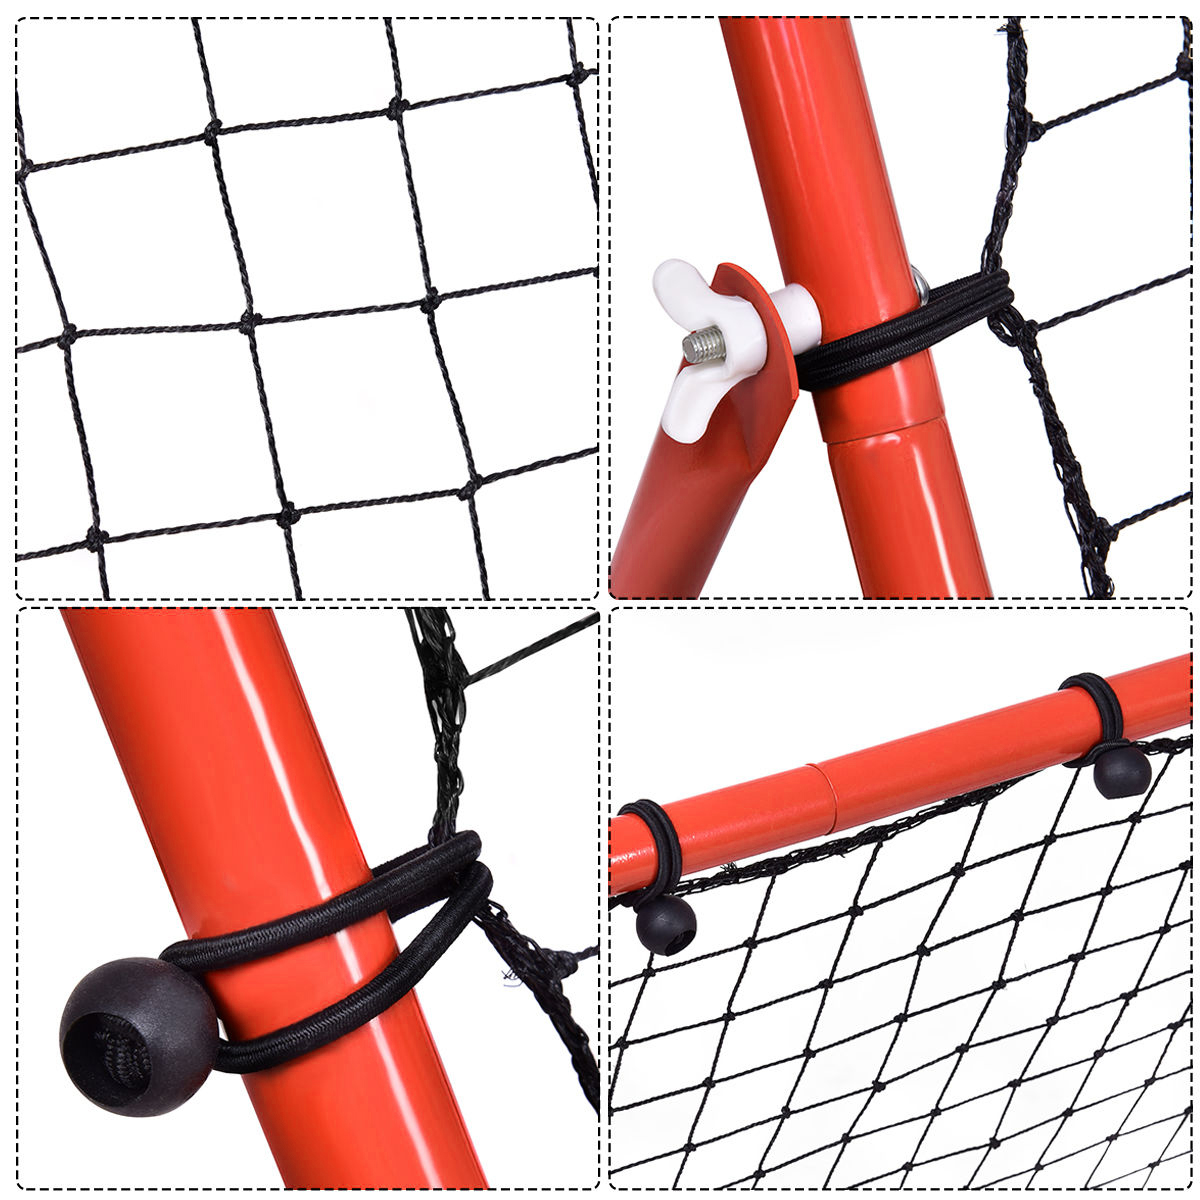 Factory supply Portable Outdoor Square sports ball rebounder soccer training,rebounder soccer goal